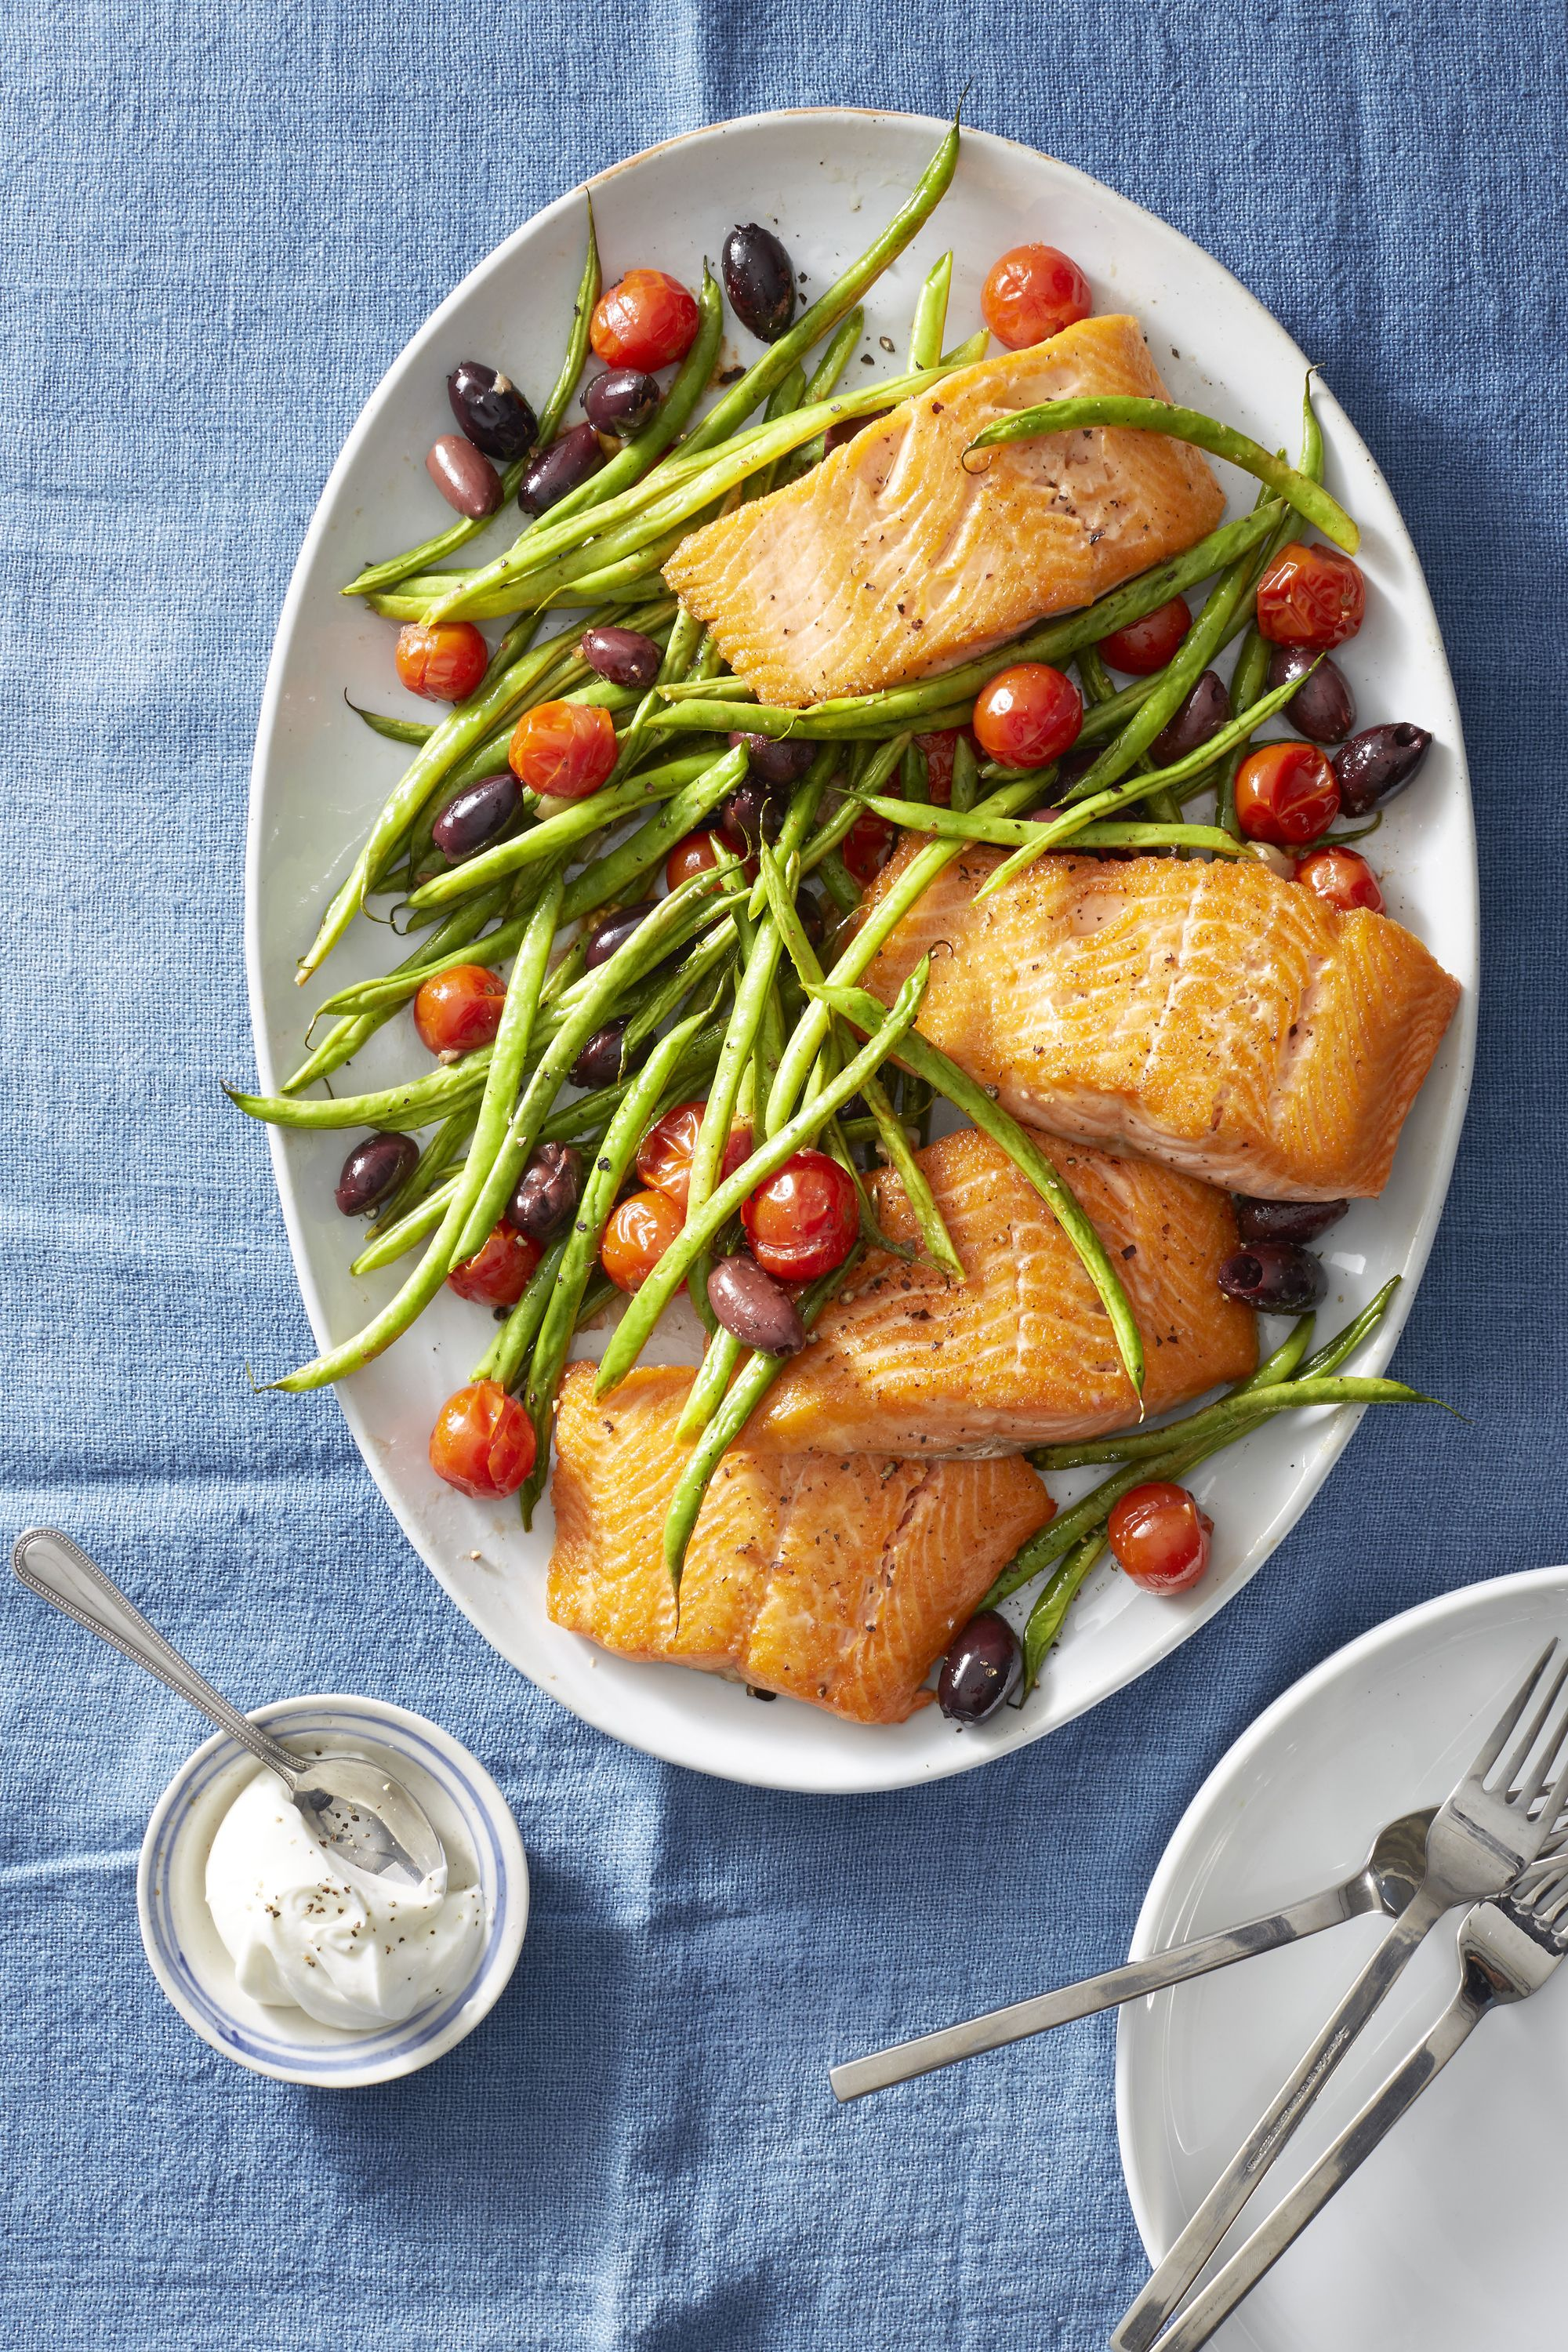 Roasted Salmon, Green Beans, and Tomatoes advise